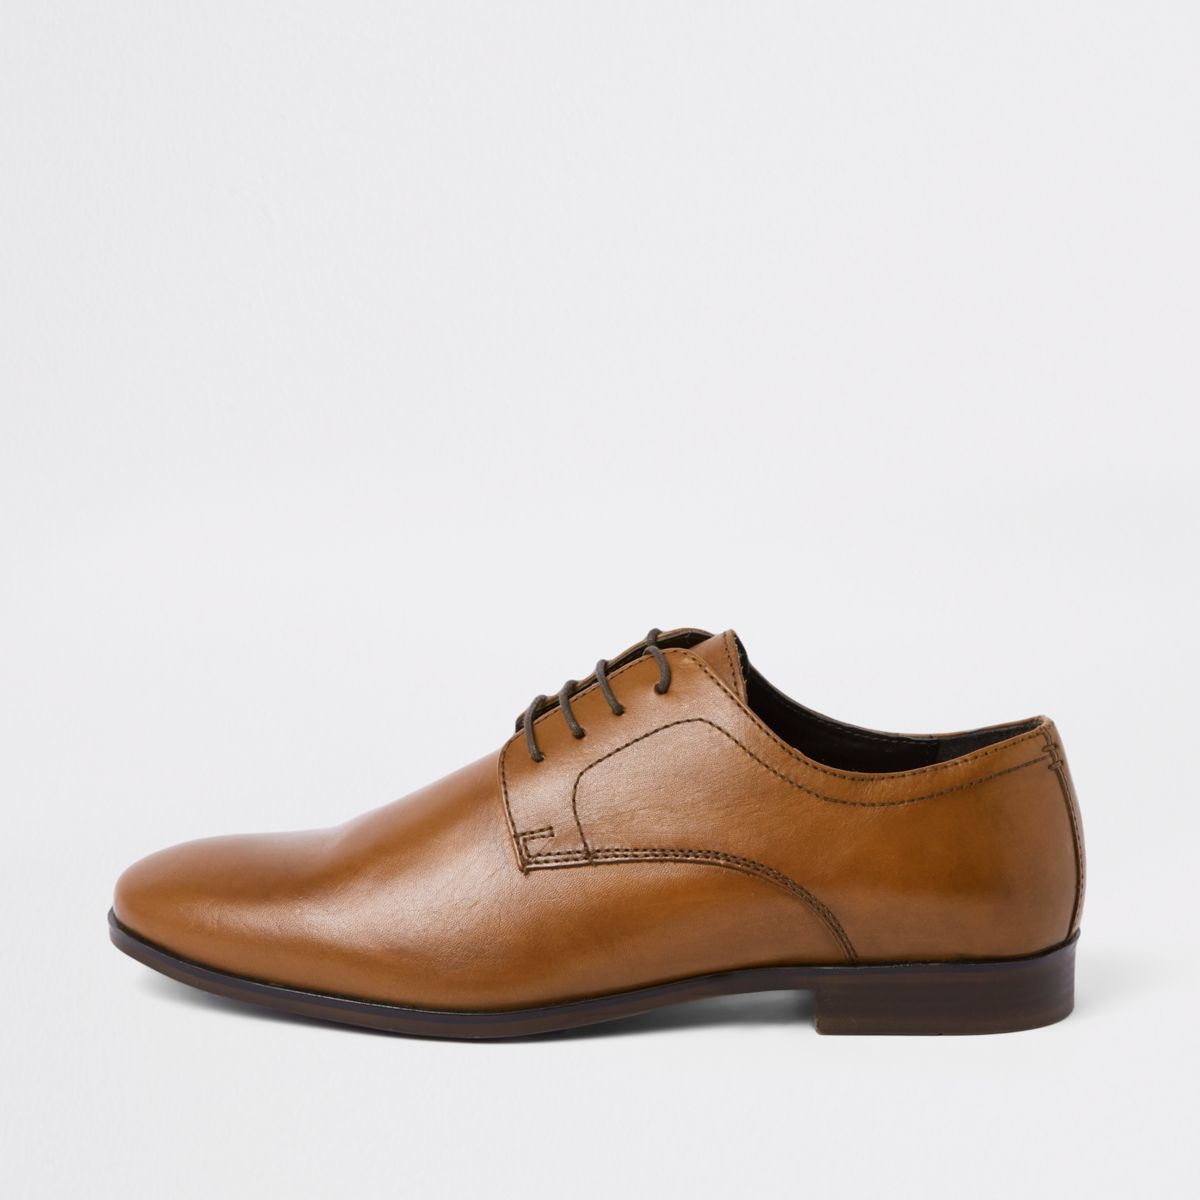 Brown leather round toe lace-up shoes